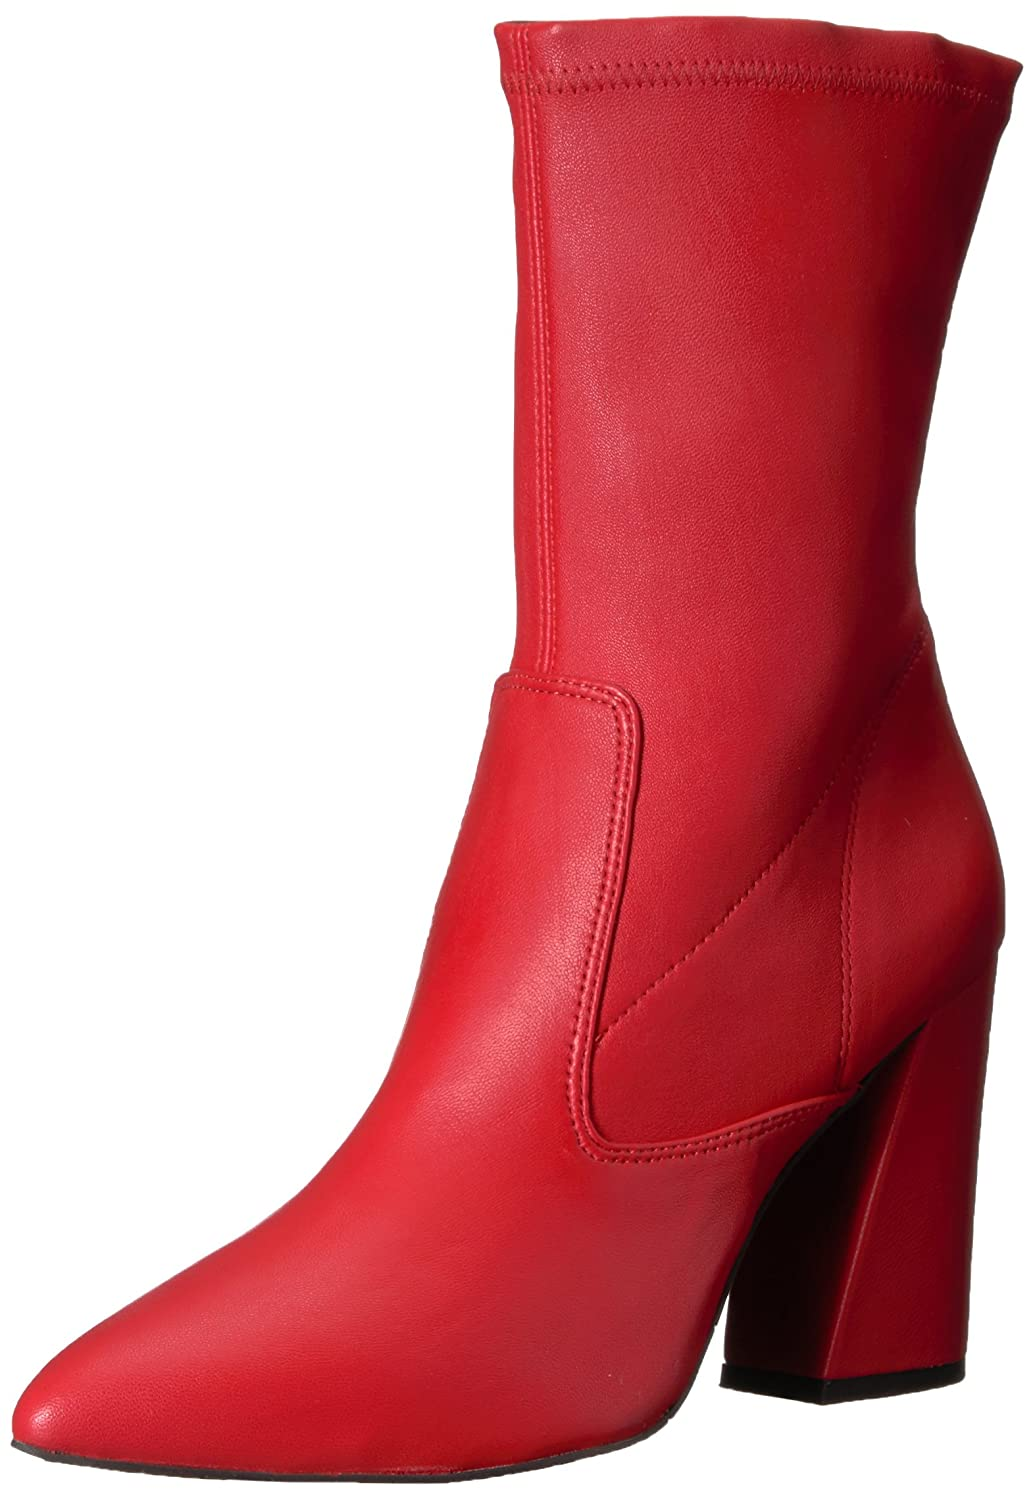 Kenneth Cole New York Women's Galla Pointed Toe Bootie with Flared Heel Stretch Shaft Ankle Boot B073XLJN57 9.5 B(M) US|Red